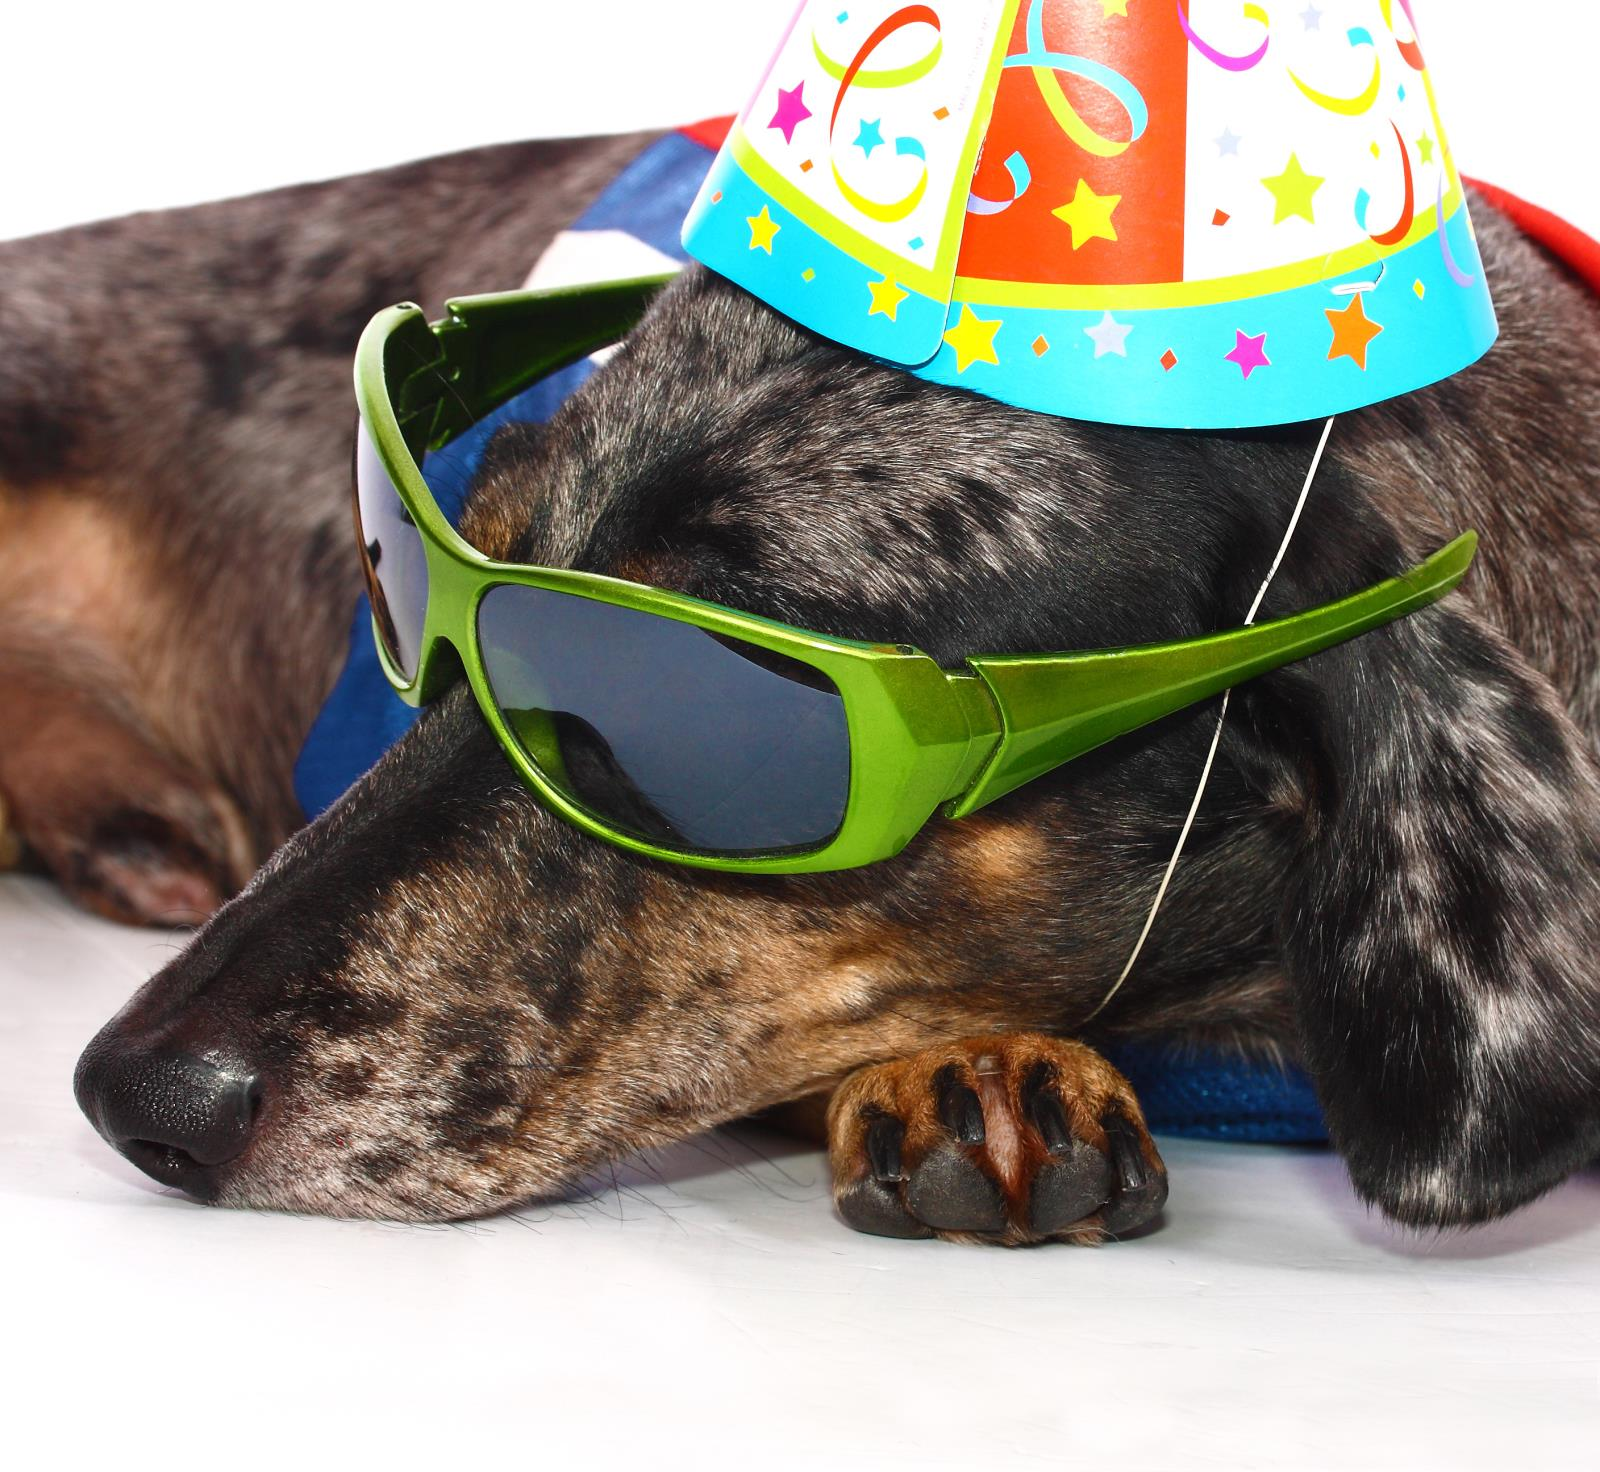 dog resting with sunglasses